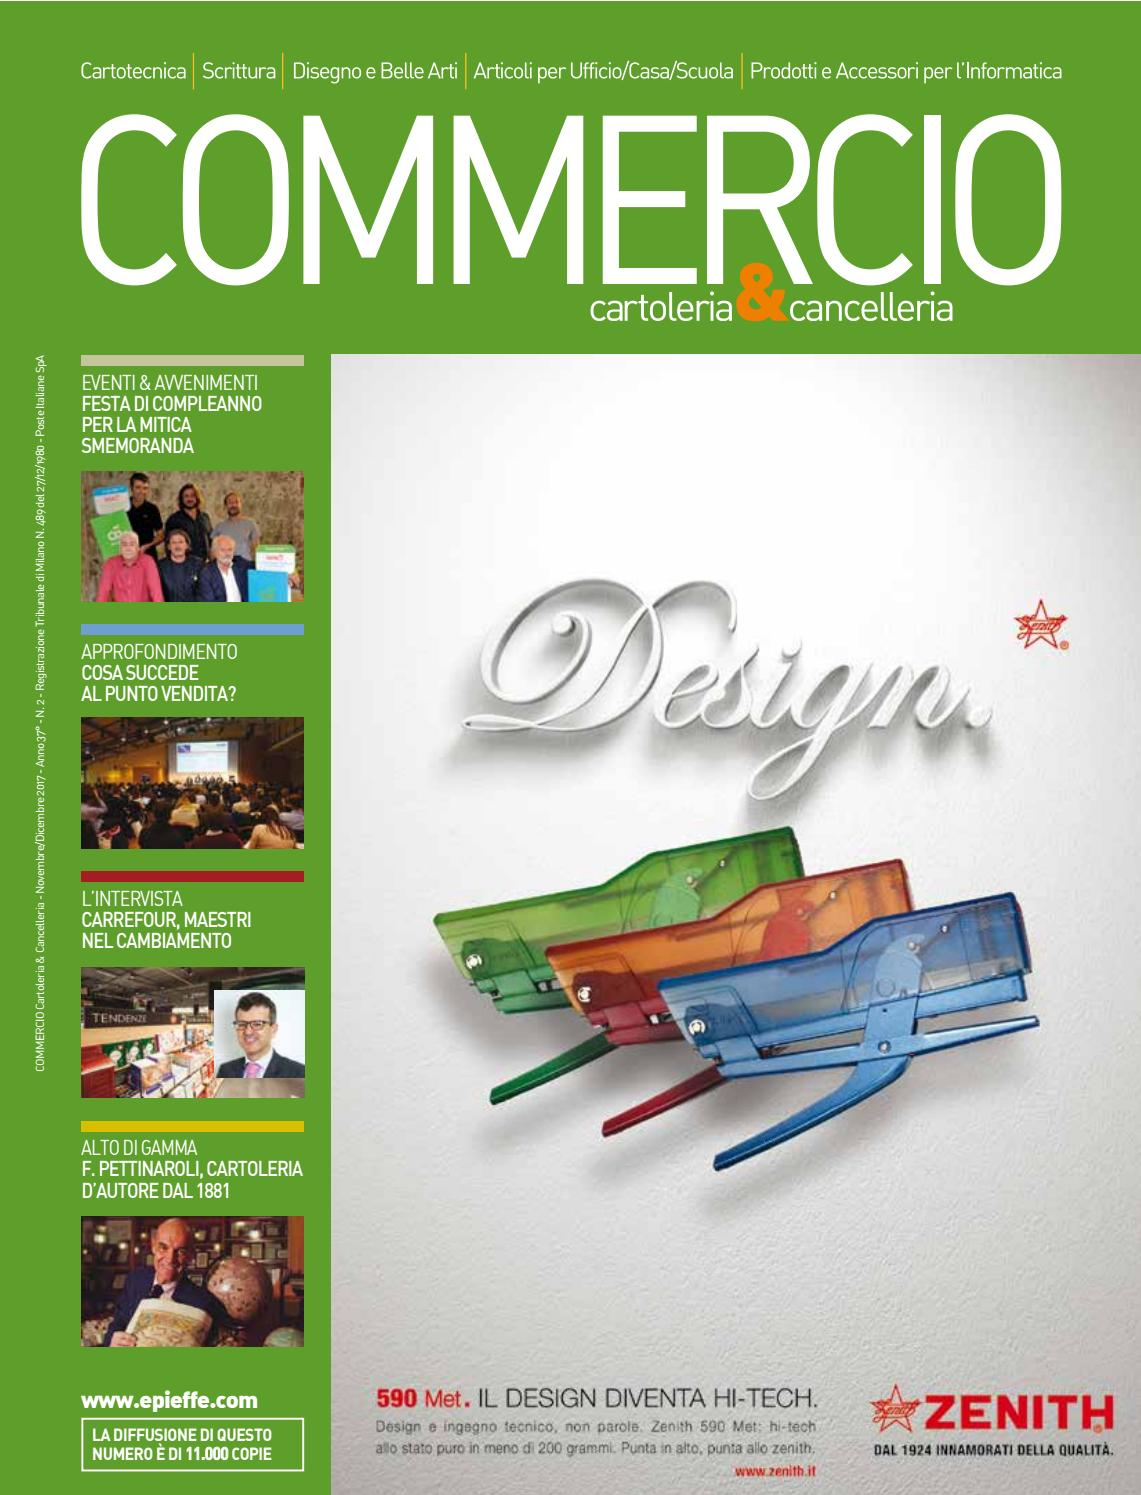 Commercio Cartoleria   Cancelleria Novembre Dicembre 2017 by COMMERCIO  Cartoleria   Cancelleria - issuu b29b60cc16b